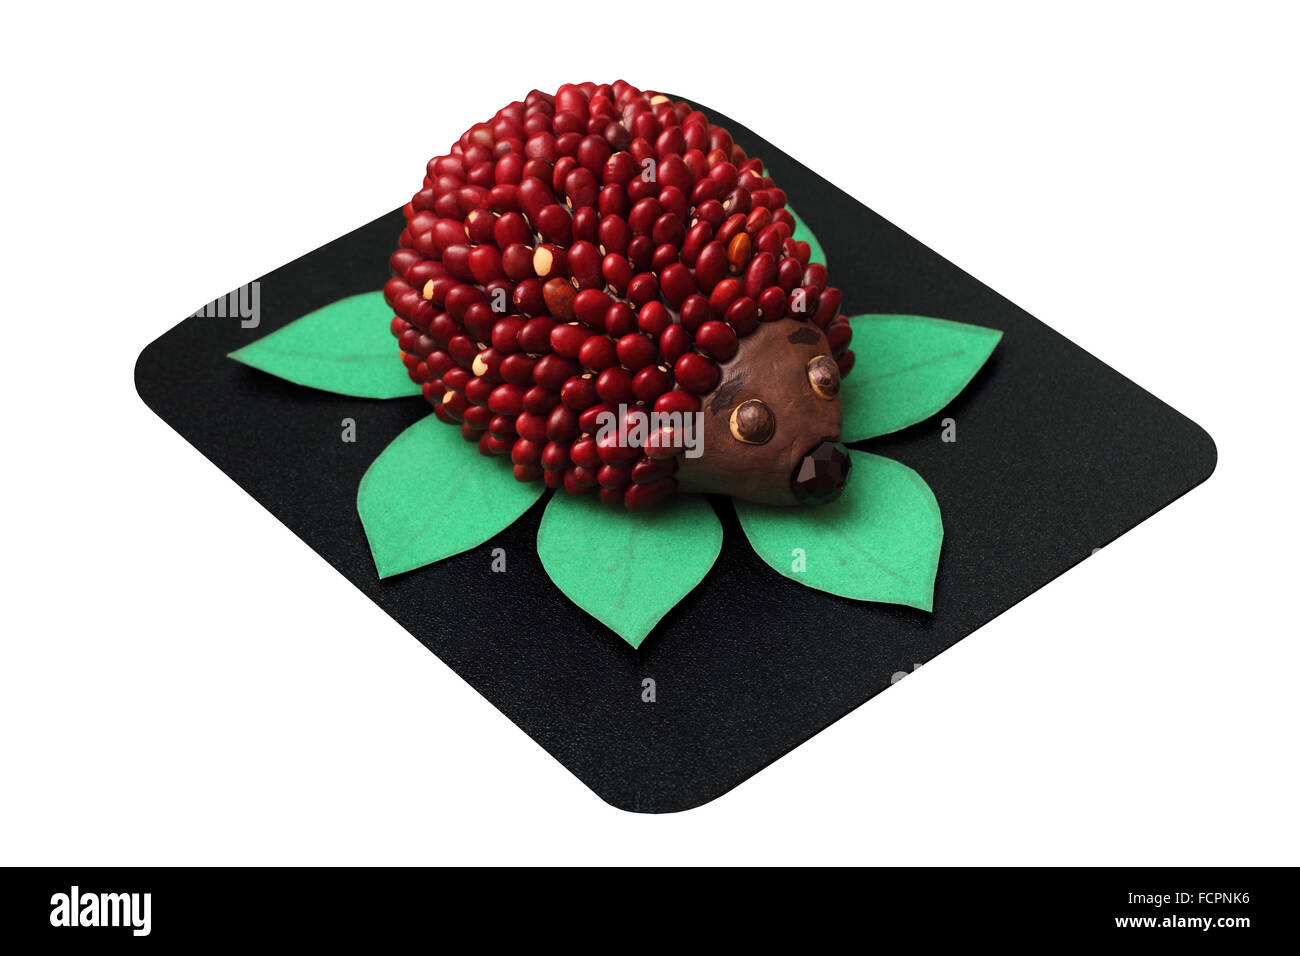 Toy hedgehog made from plasticine and beans isolated on white - Stock Image